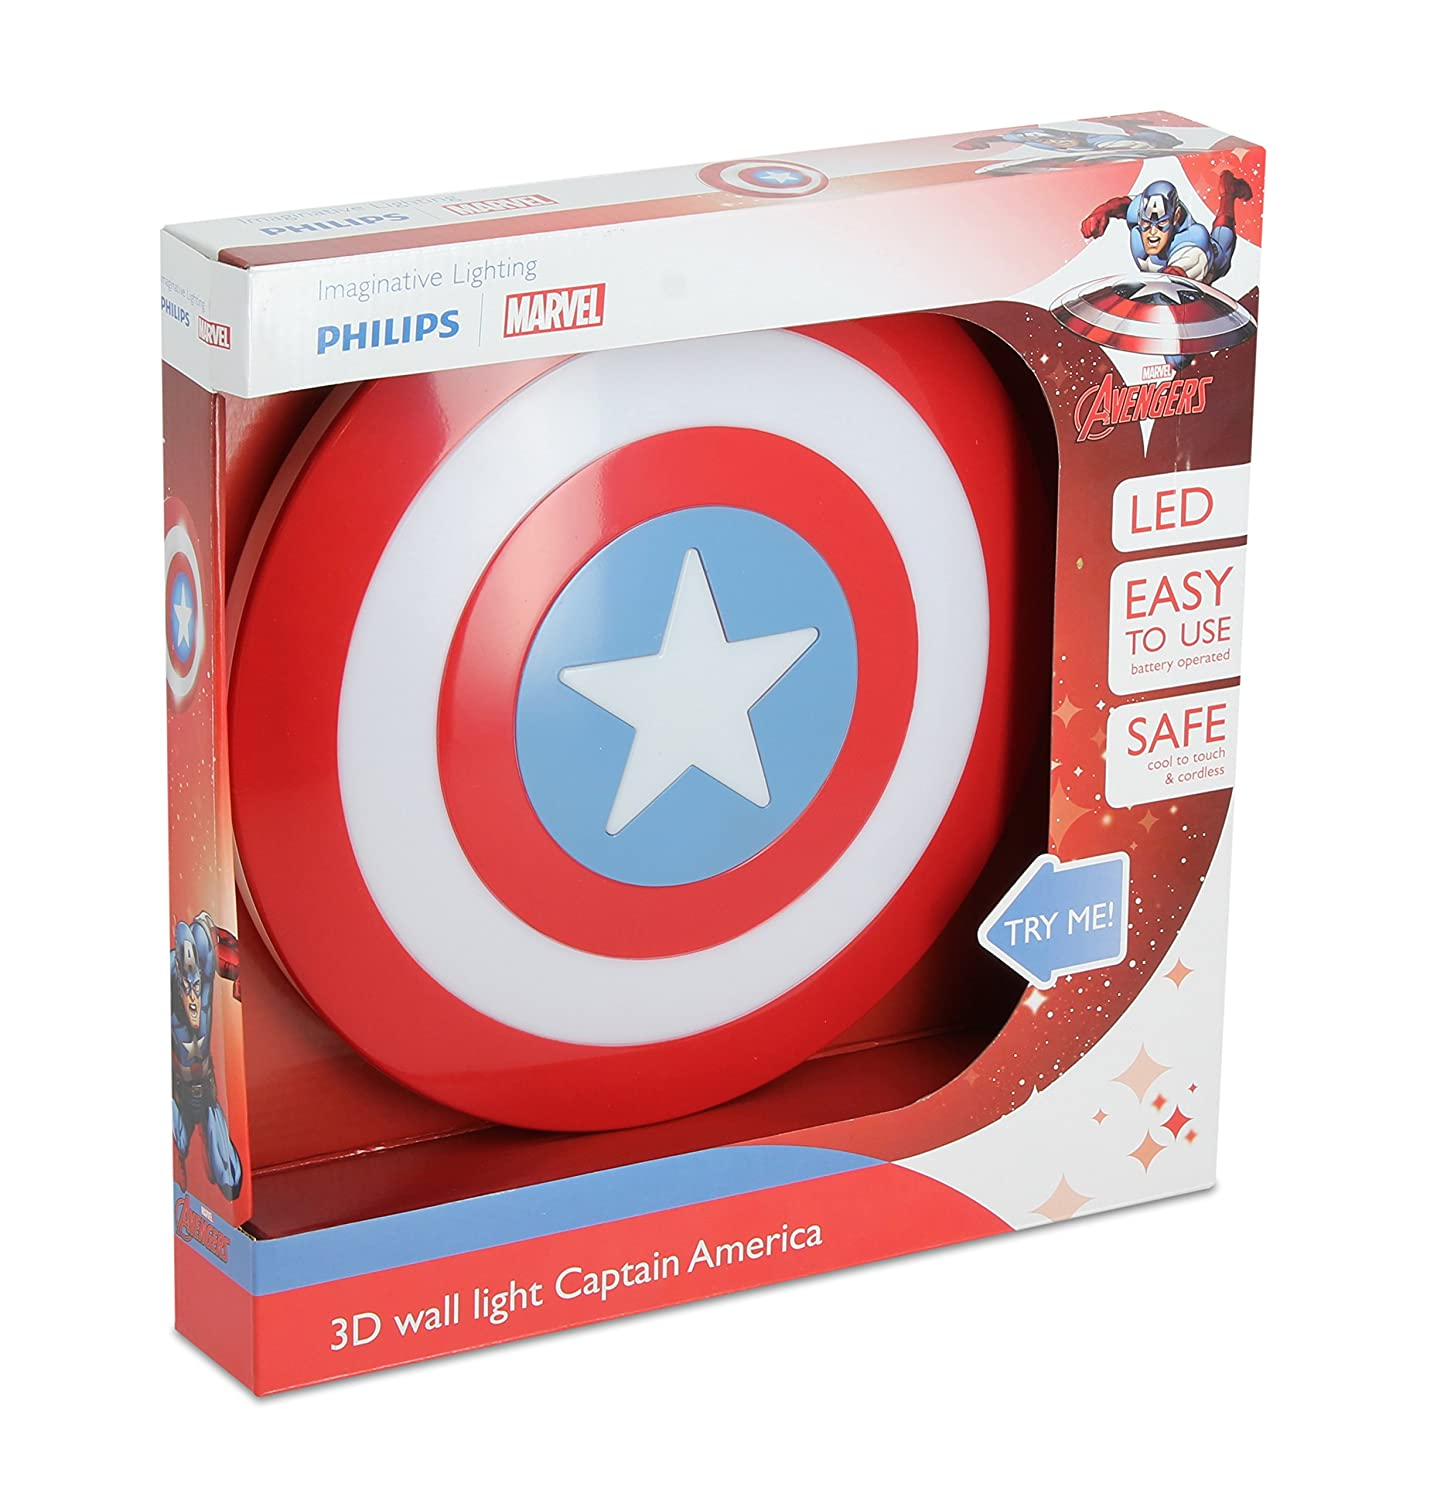 863fcc6dc Philips Marvel Captain America Shield 3D LED Wall Light Including 3AA  Batteries